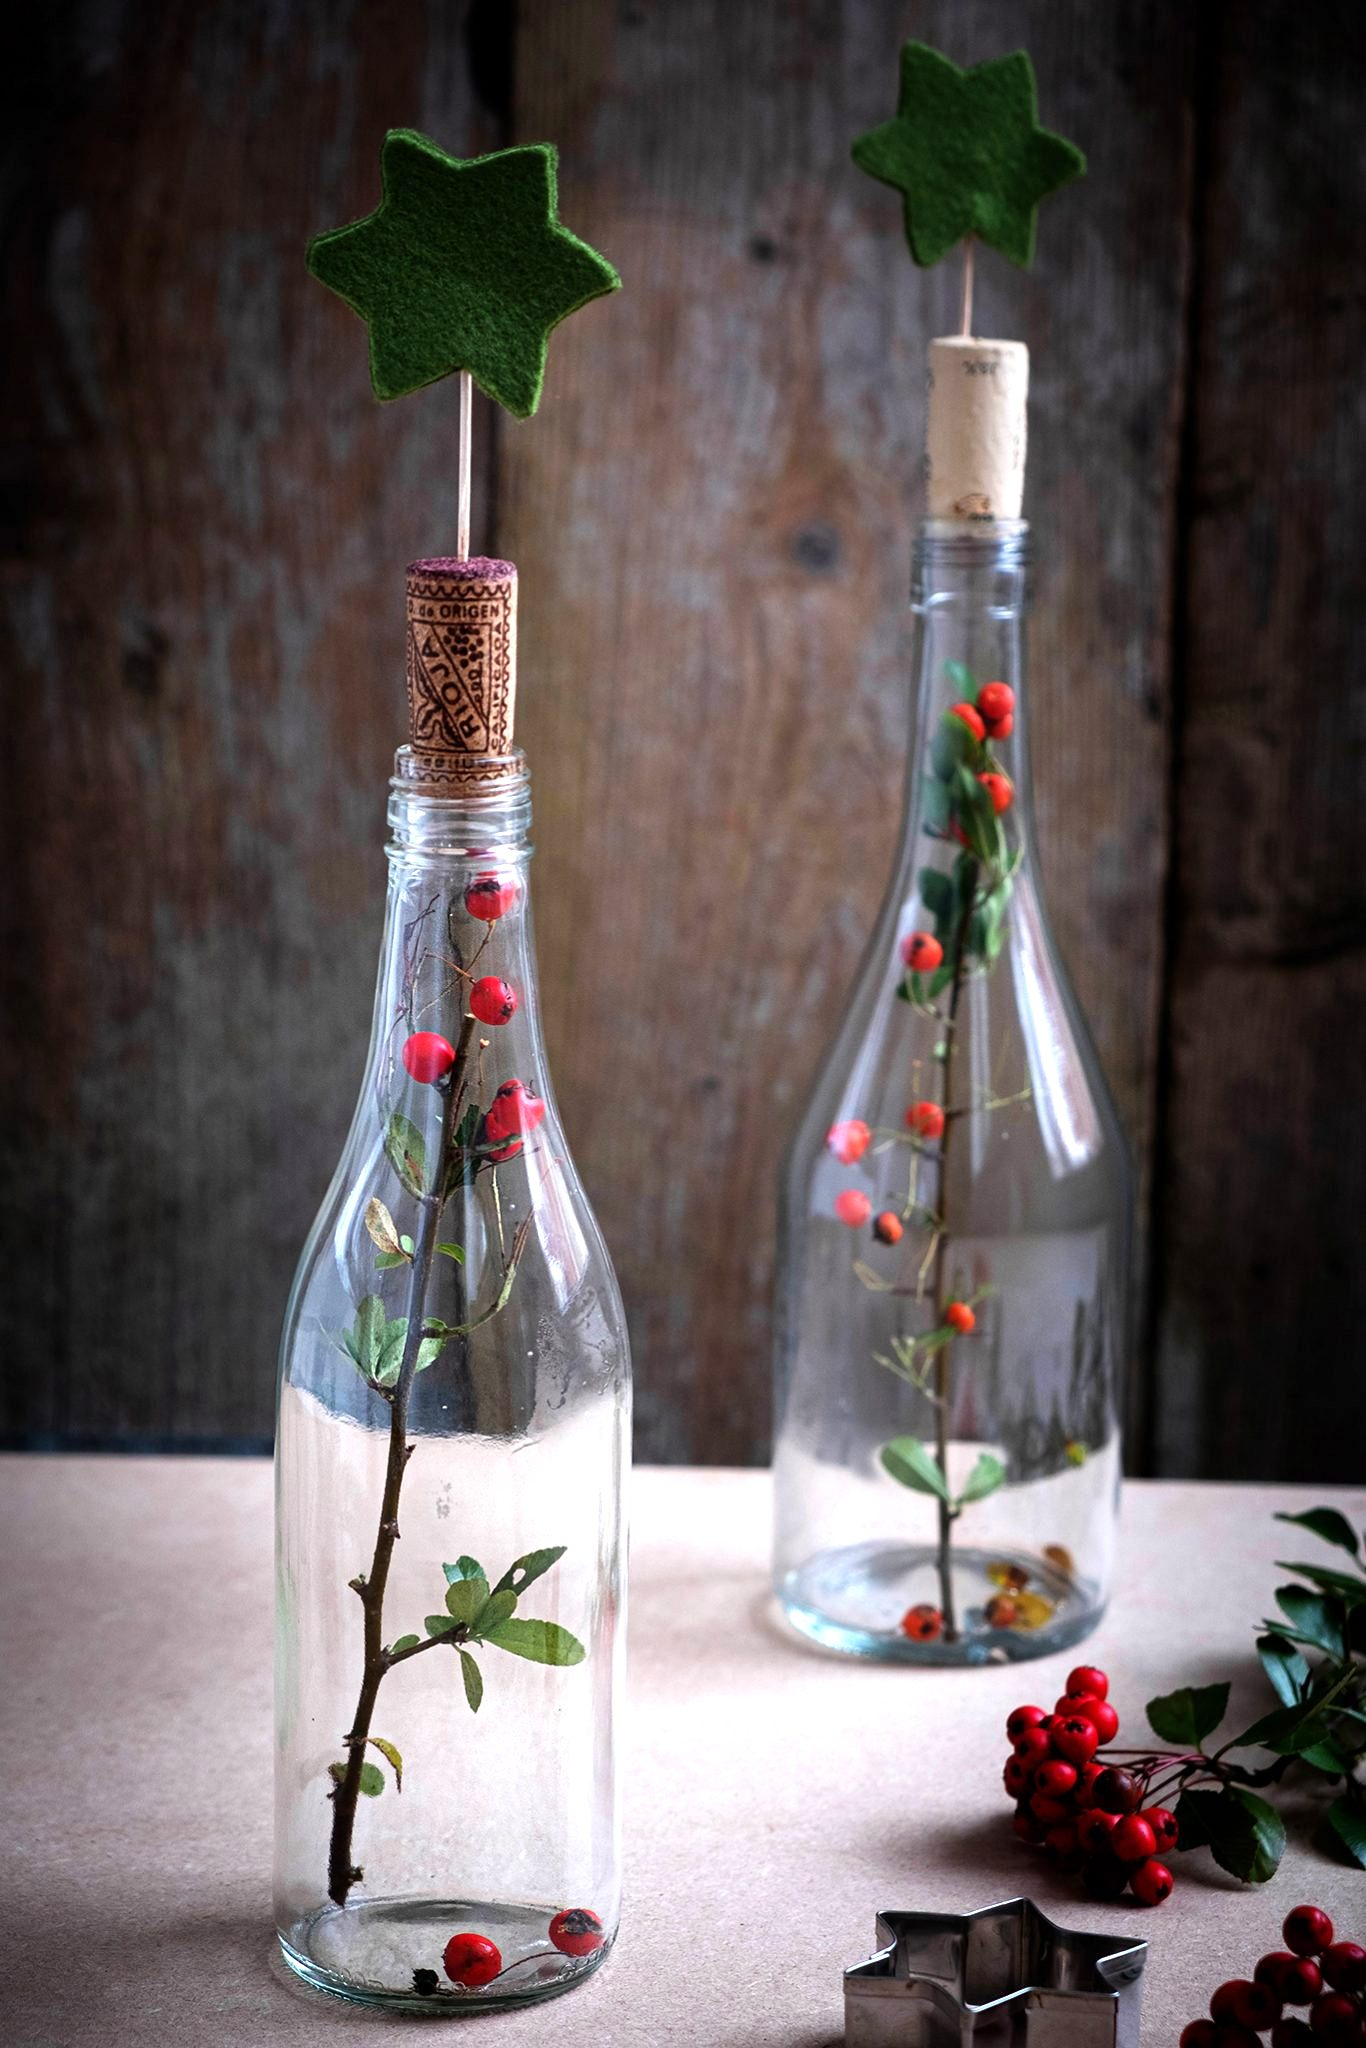 Cloche Christmas bottles by ElsarBlog, featured on Funky Junk Interiors